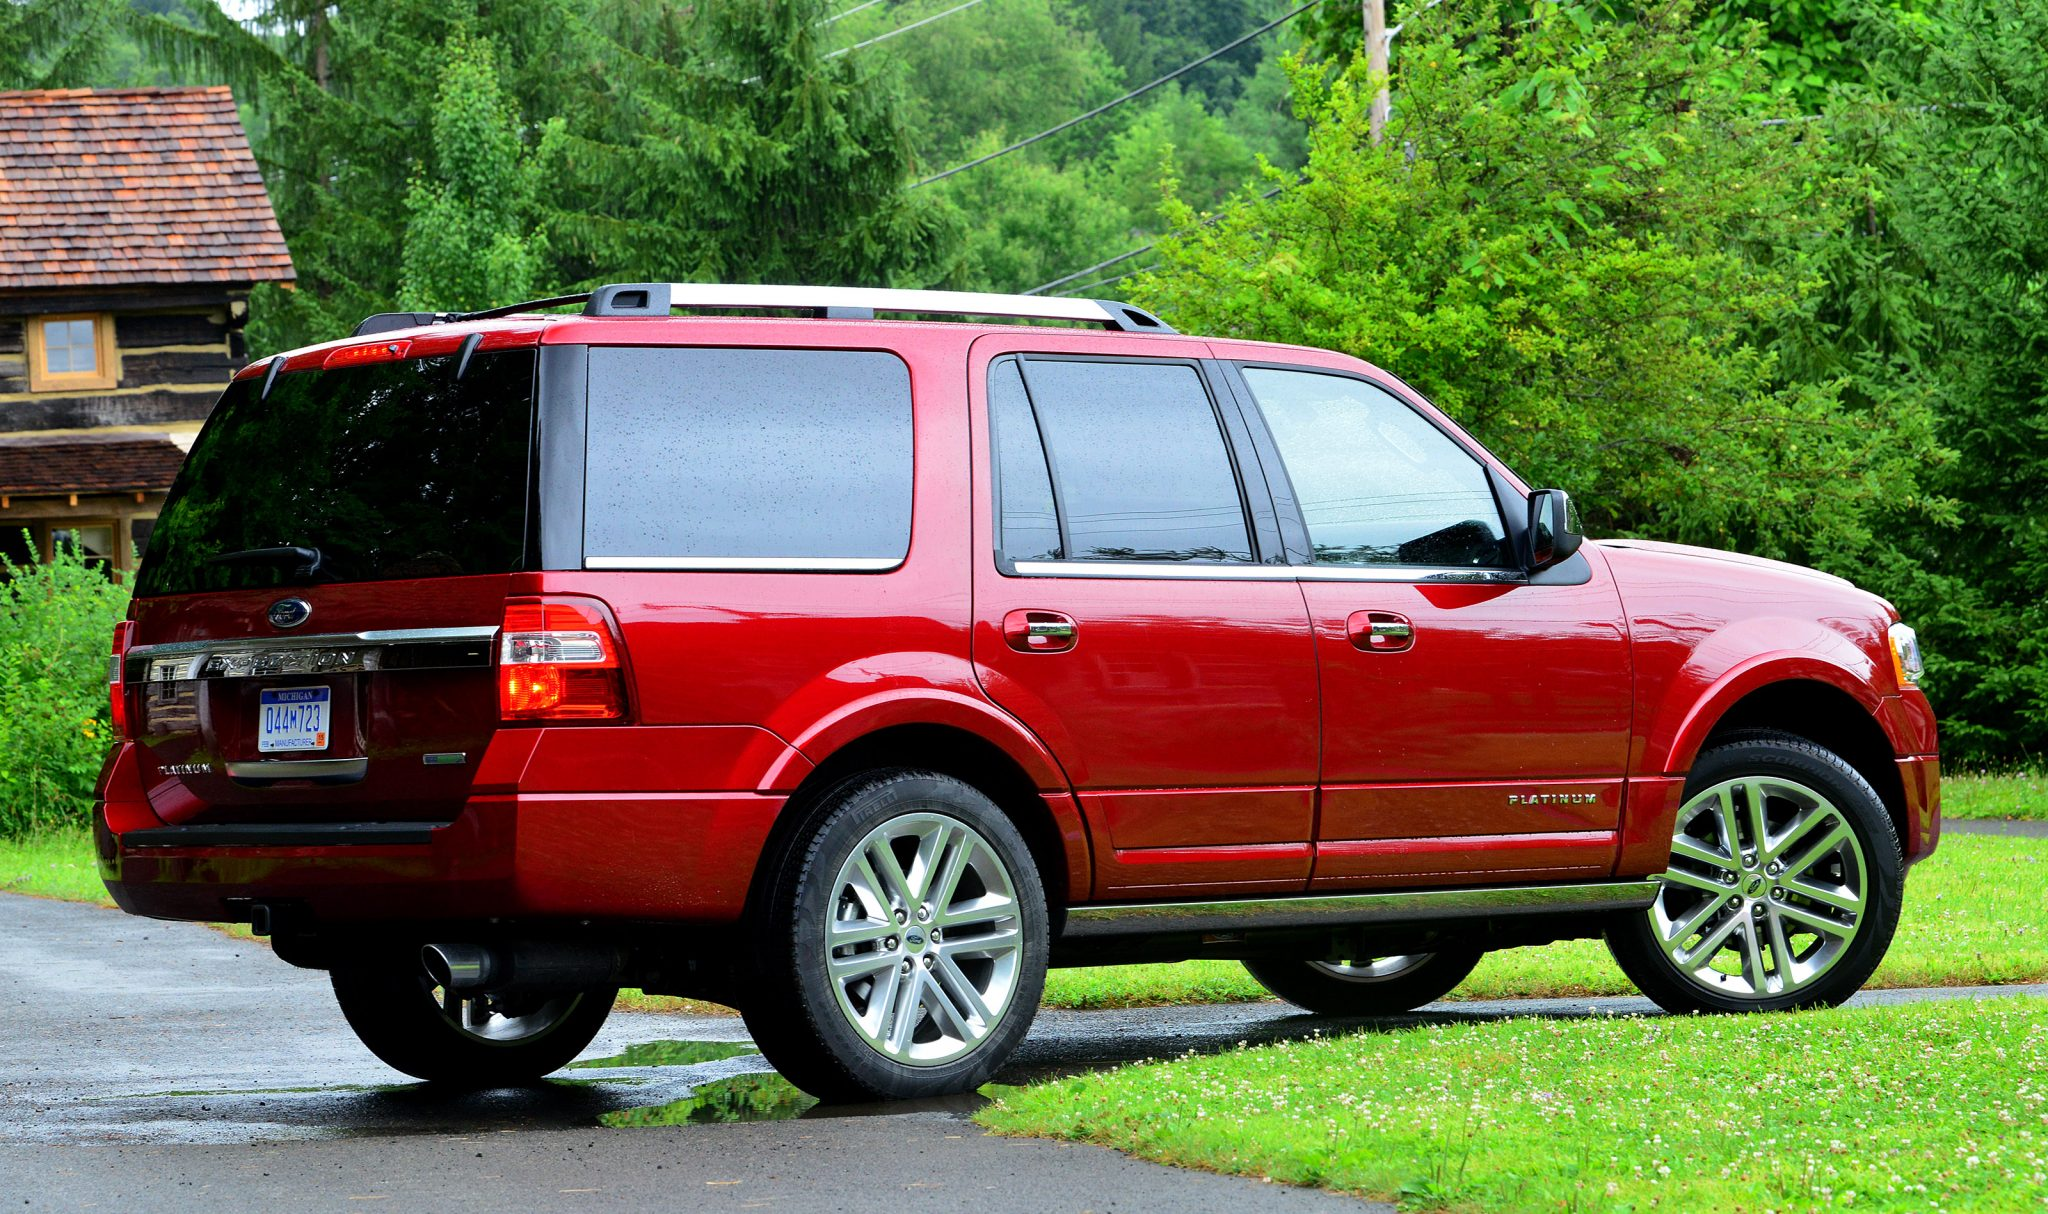 2015 expedition ford s full size suv gets updated upgraded the news wheel. Black Bedroom Furniture Sets. Home Design Ideas